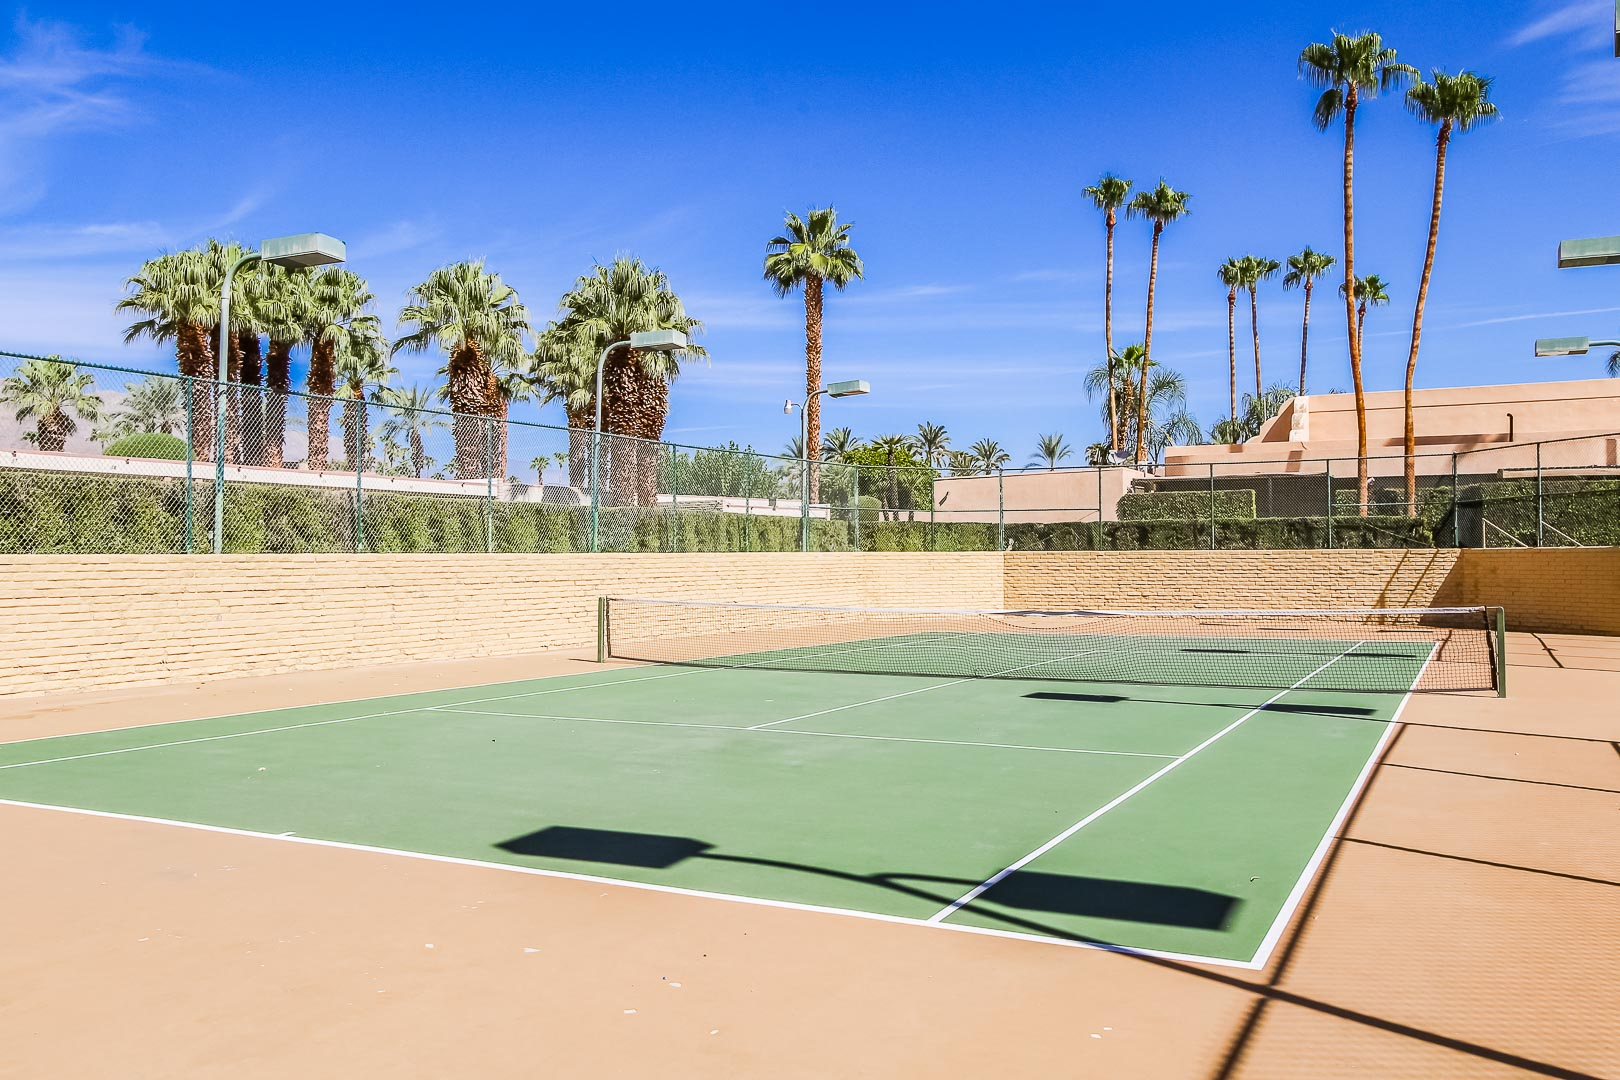 Large outside tennis courts at VRI's Desert Isle Resort in California.